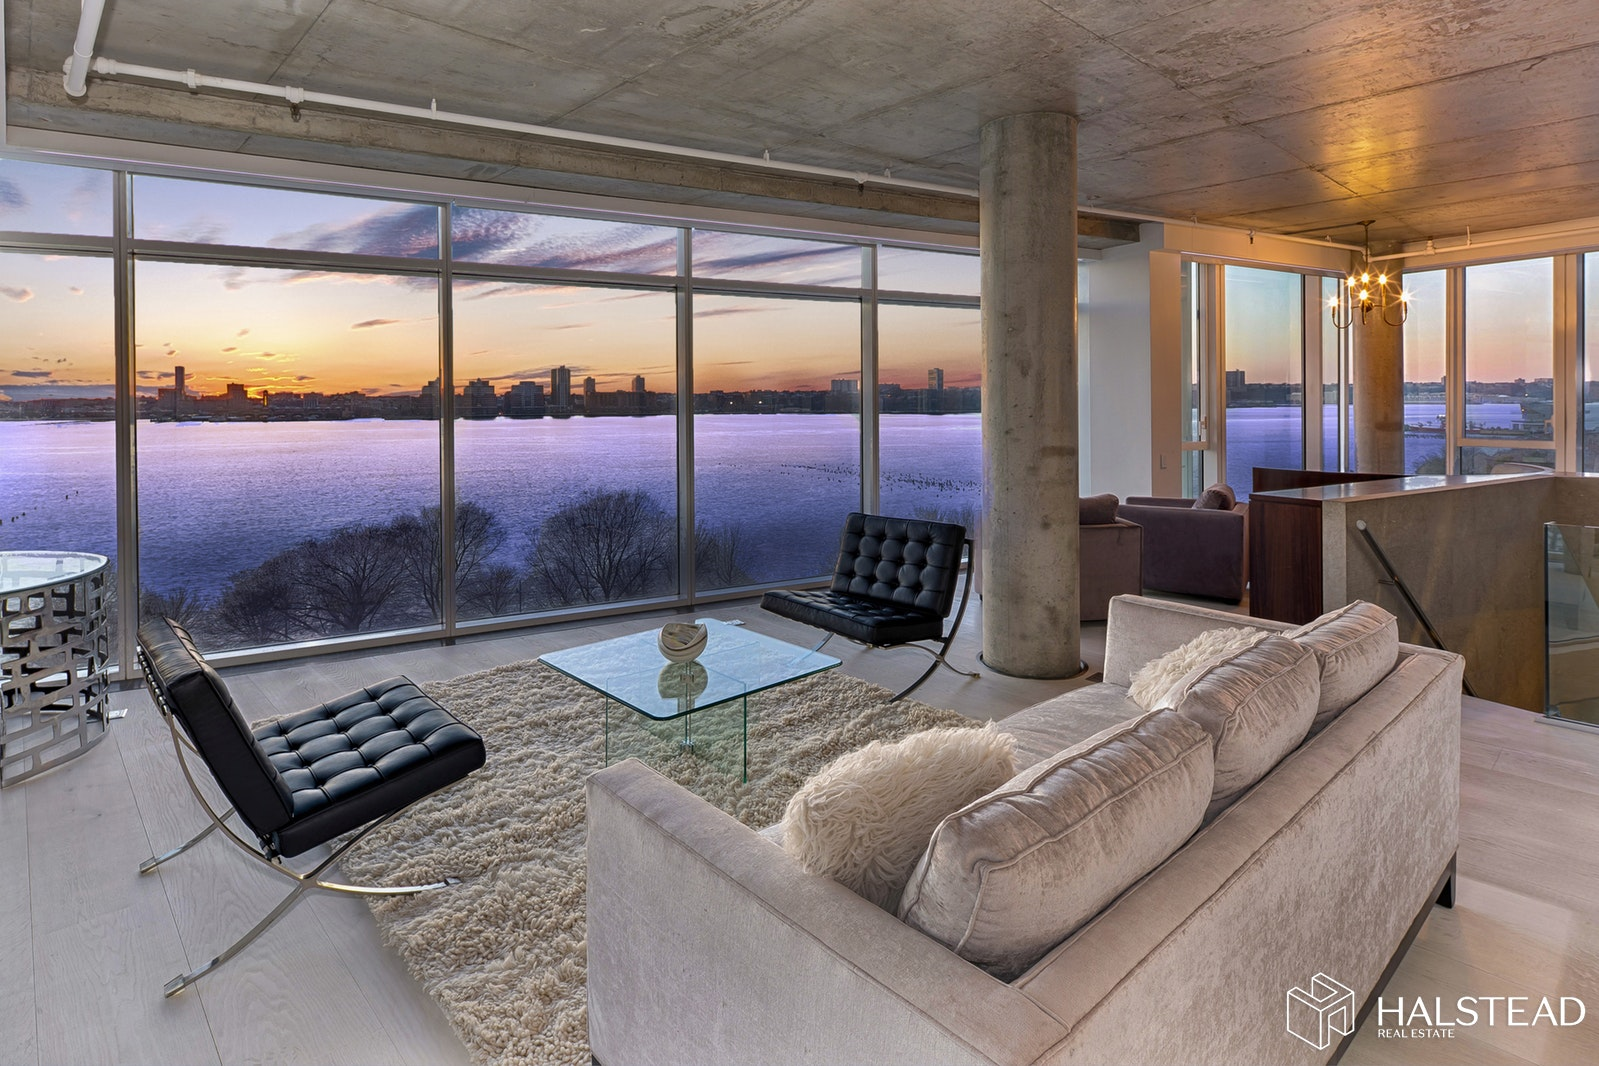 The breathtaking unobstructed Hudson River view of the Freedom Tower and downtown is just one aspect of this truly unique and gorgeous duplex apartment. Close to 3700 sqft, this eye-catching 3-bedroom home includes a Grand Master Bedroom that enjoys all the views of the living space, 3 private balconies, 3.5 bathrooms, a media room, home office area, laundry with a double washer/dryer, plenty of storage, multi zoned central air and heat, a stunning chef's kitchen and an elevator that opens into your home on both floors. The 10-foot-high ceilings and floor to ceiling glass walls make this modern duplex so special. Other features include custom built wine closet, white oak plank flooring, beautiful cabinetry and a stylish stone staircase connecting the two floors. 173 Perry is a full service condominium with a brand new gym and renovated building utilities.